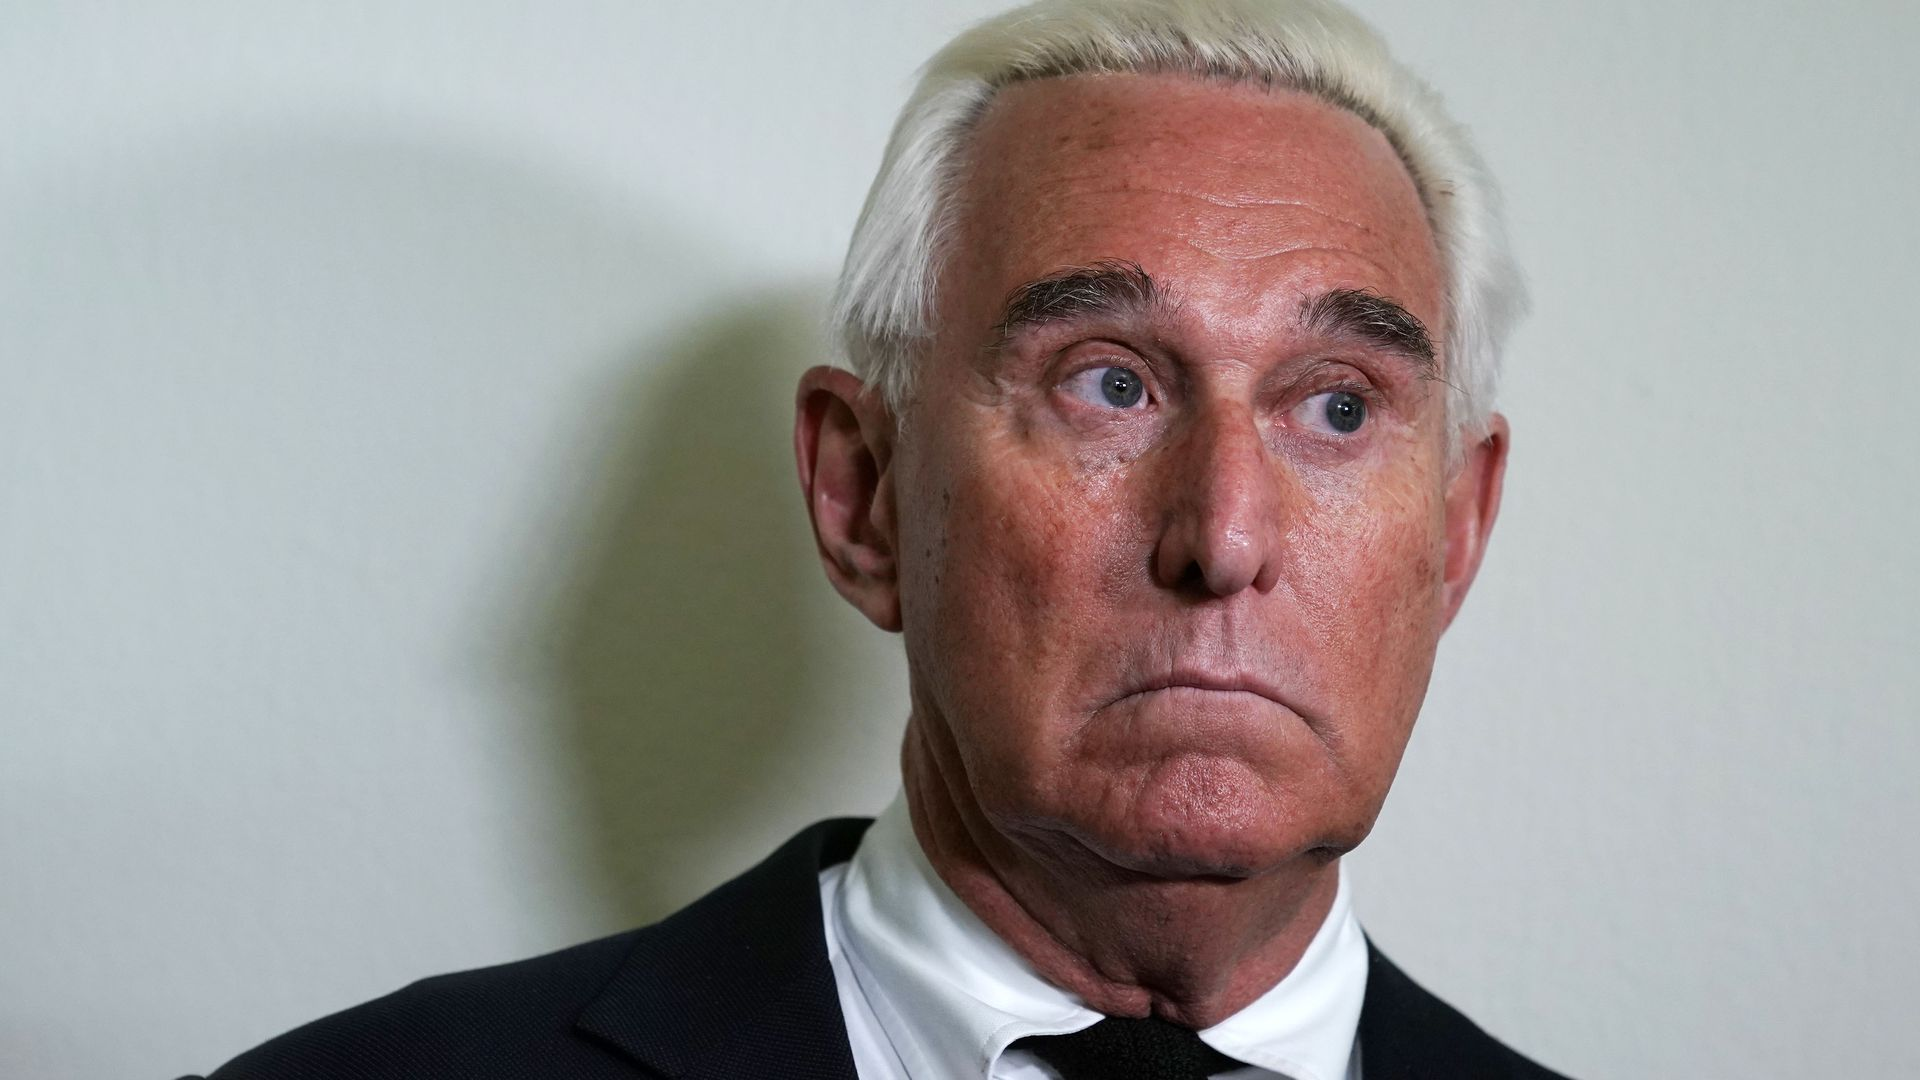 Roger Stone looking worried